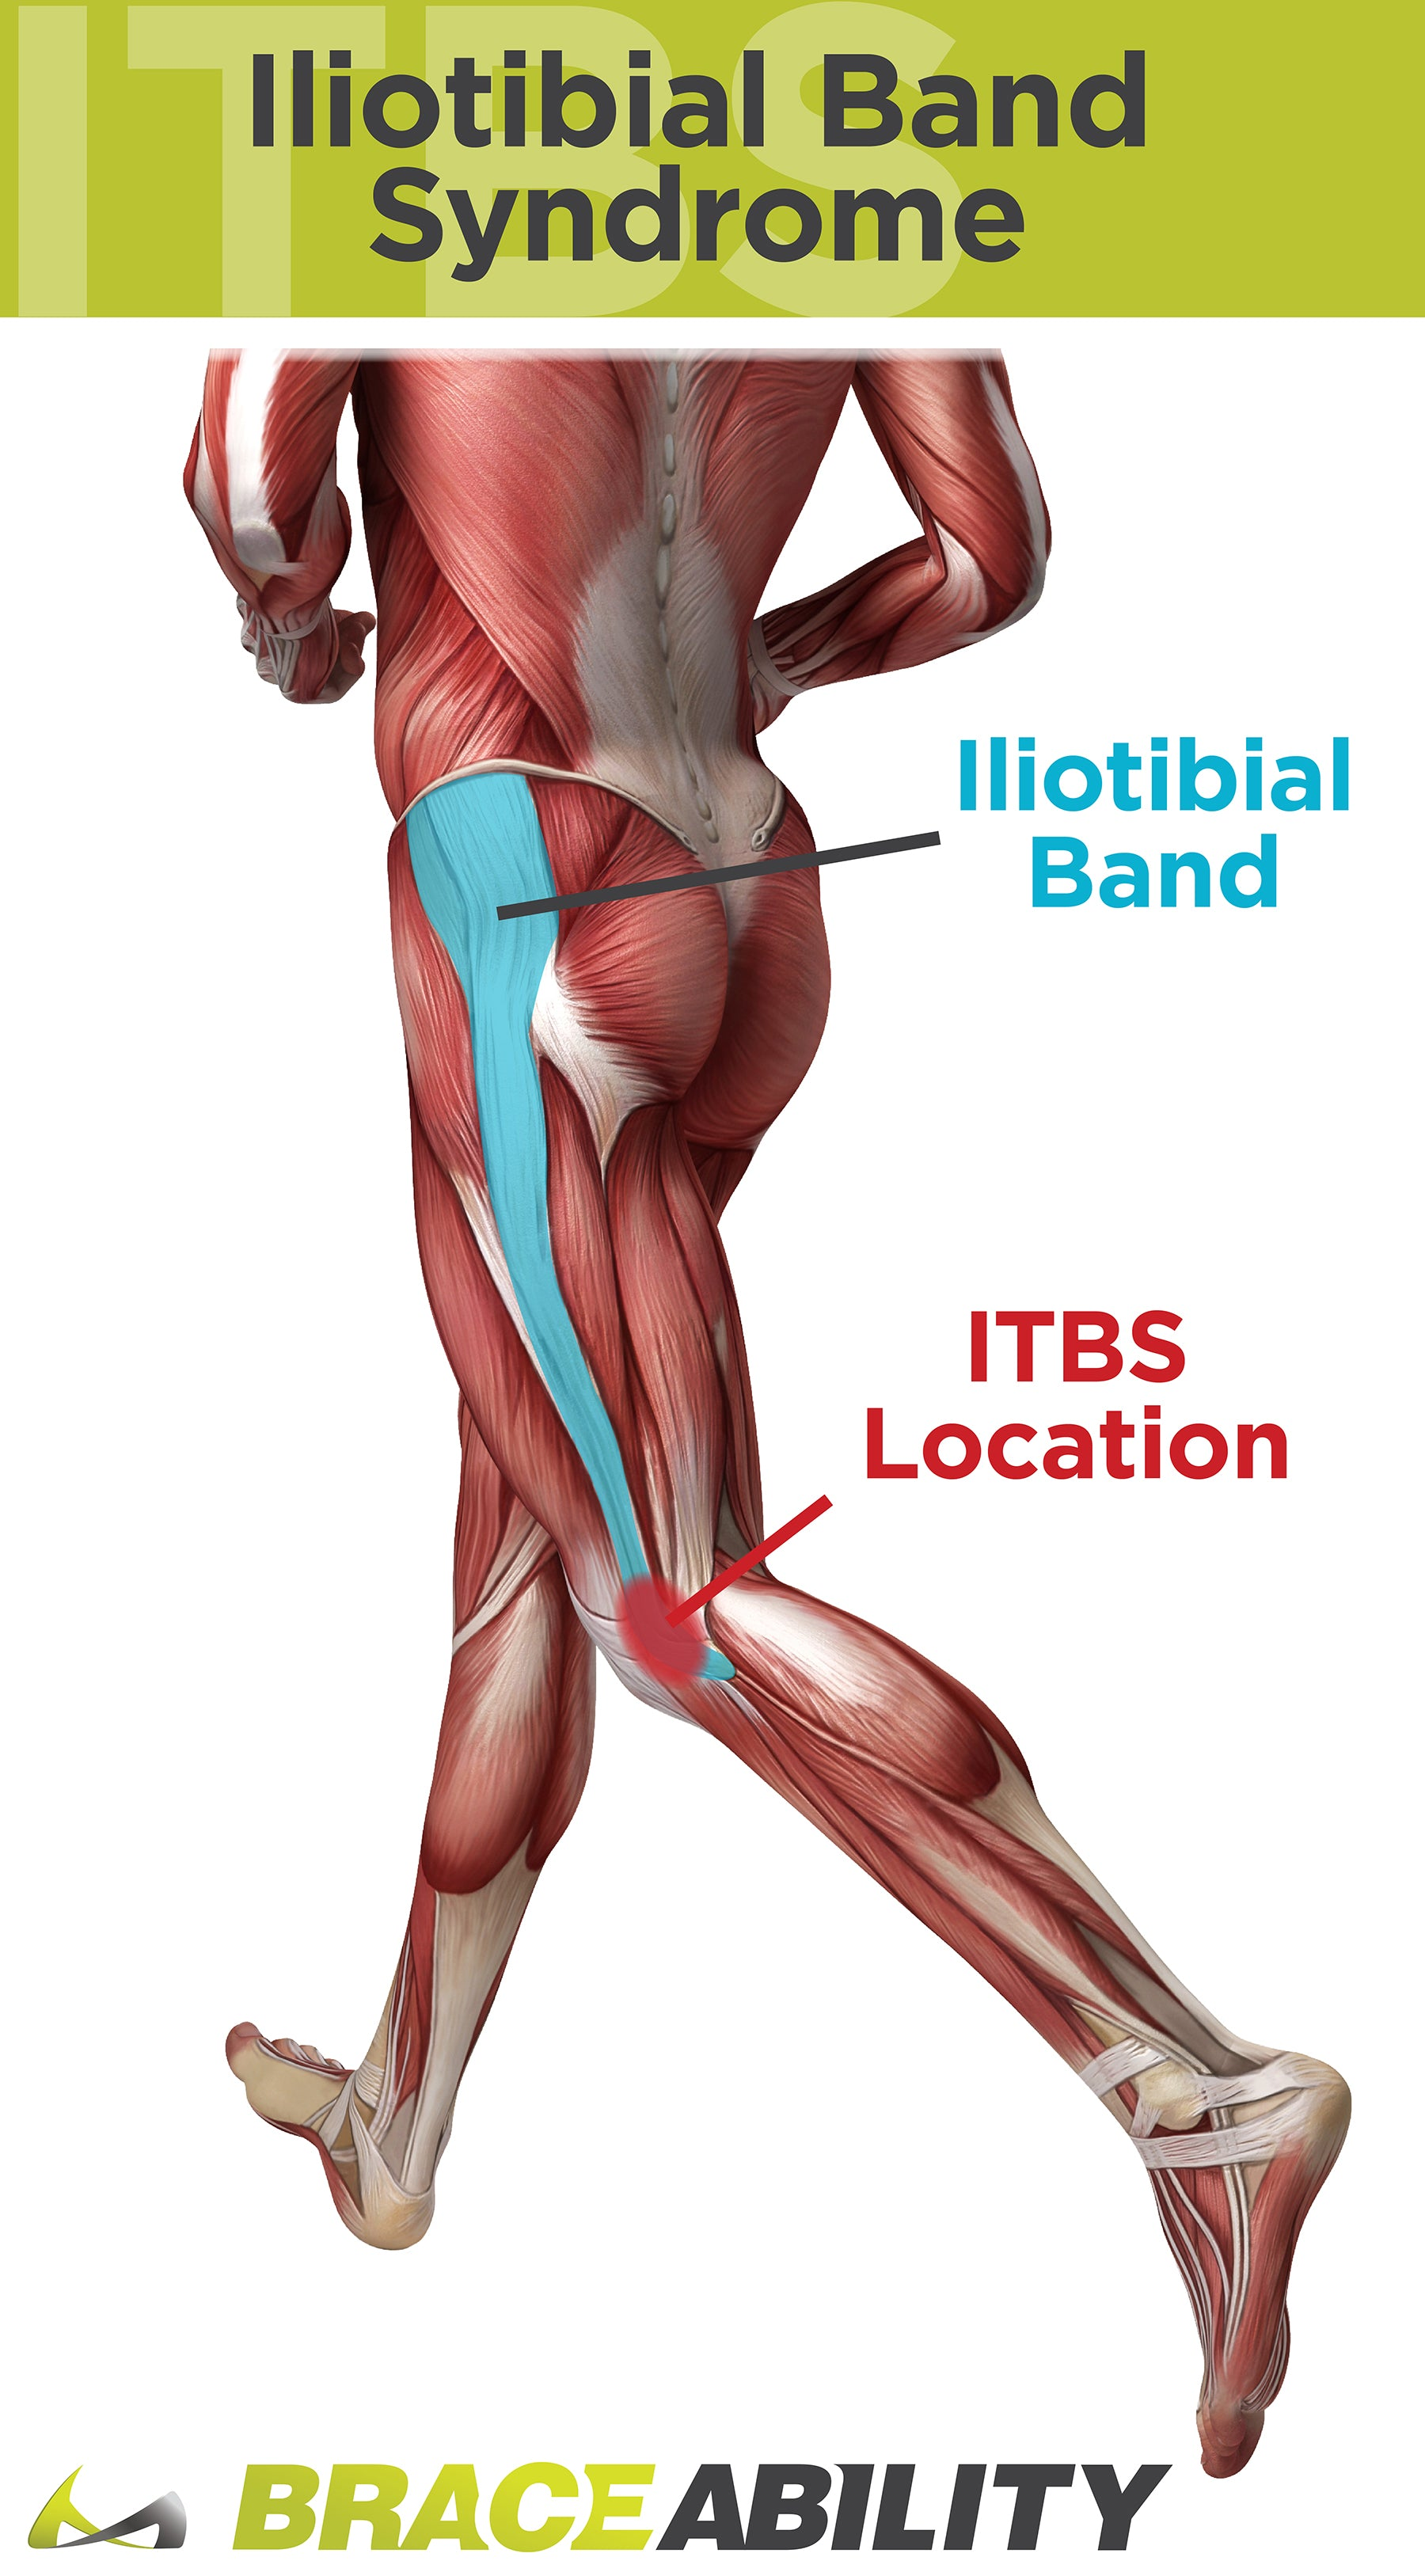 Marvelous IT Band Syndrome Is A Leading Cause Of Knee Pain Through The Iliotibial  Band Syndrome